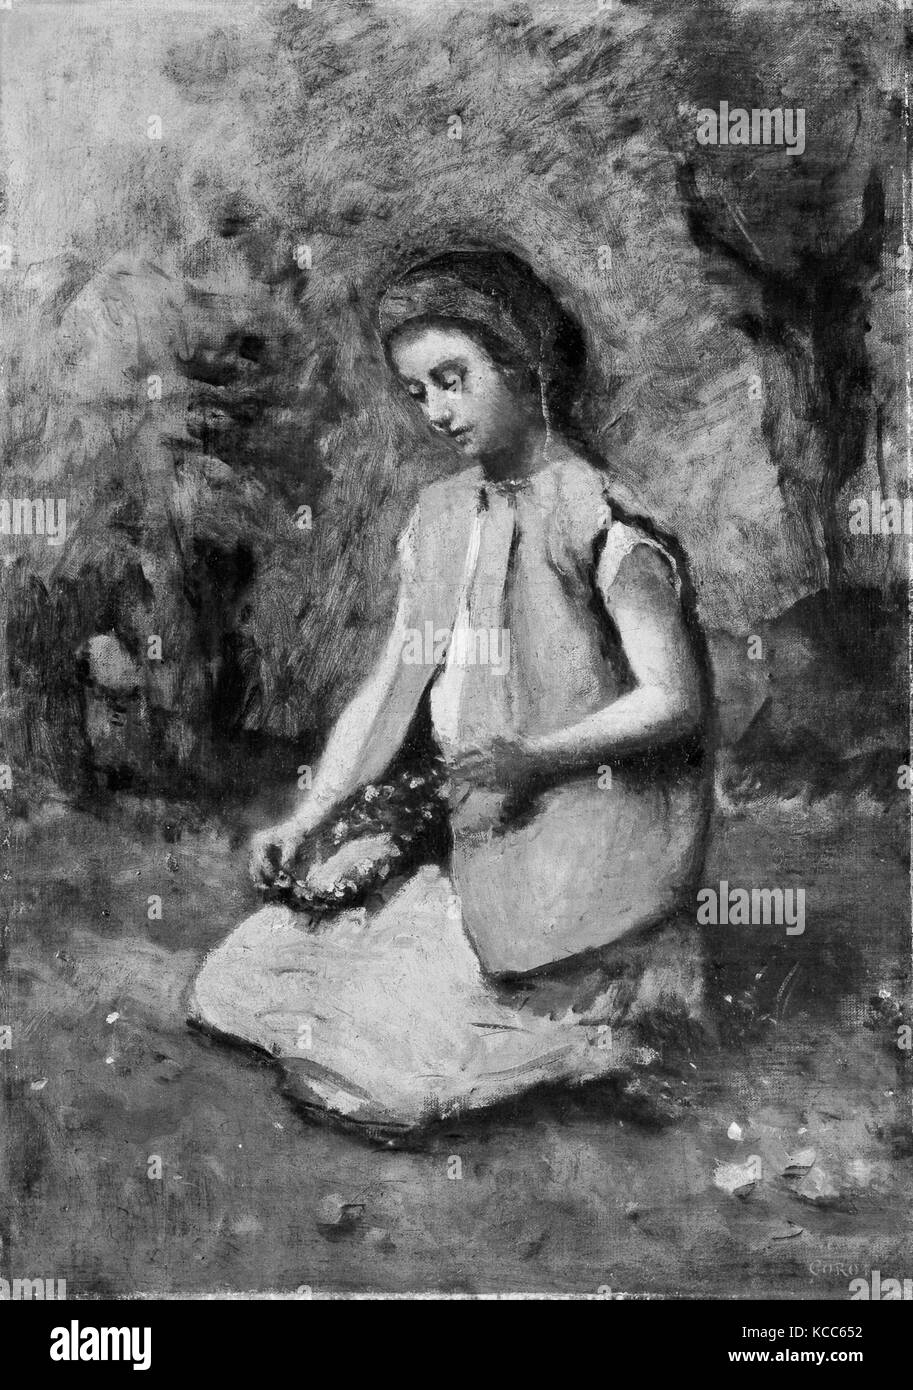 Girl Weaving a Garland, 1860–65, Oil on canvas, 16 1/2 x 11 3/4 in. (41.9 x 29.8 cm), Paintings, Camille Corot (French, - Stock Image